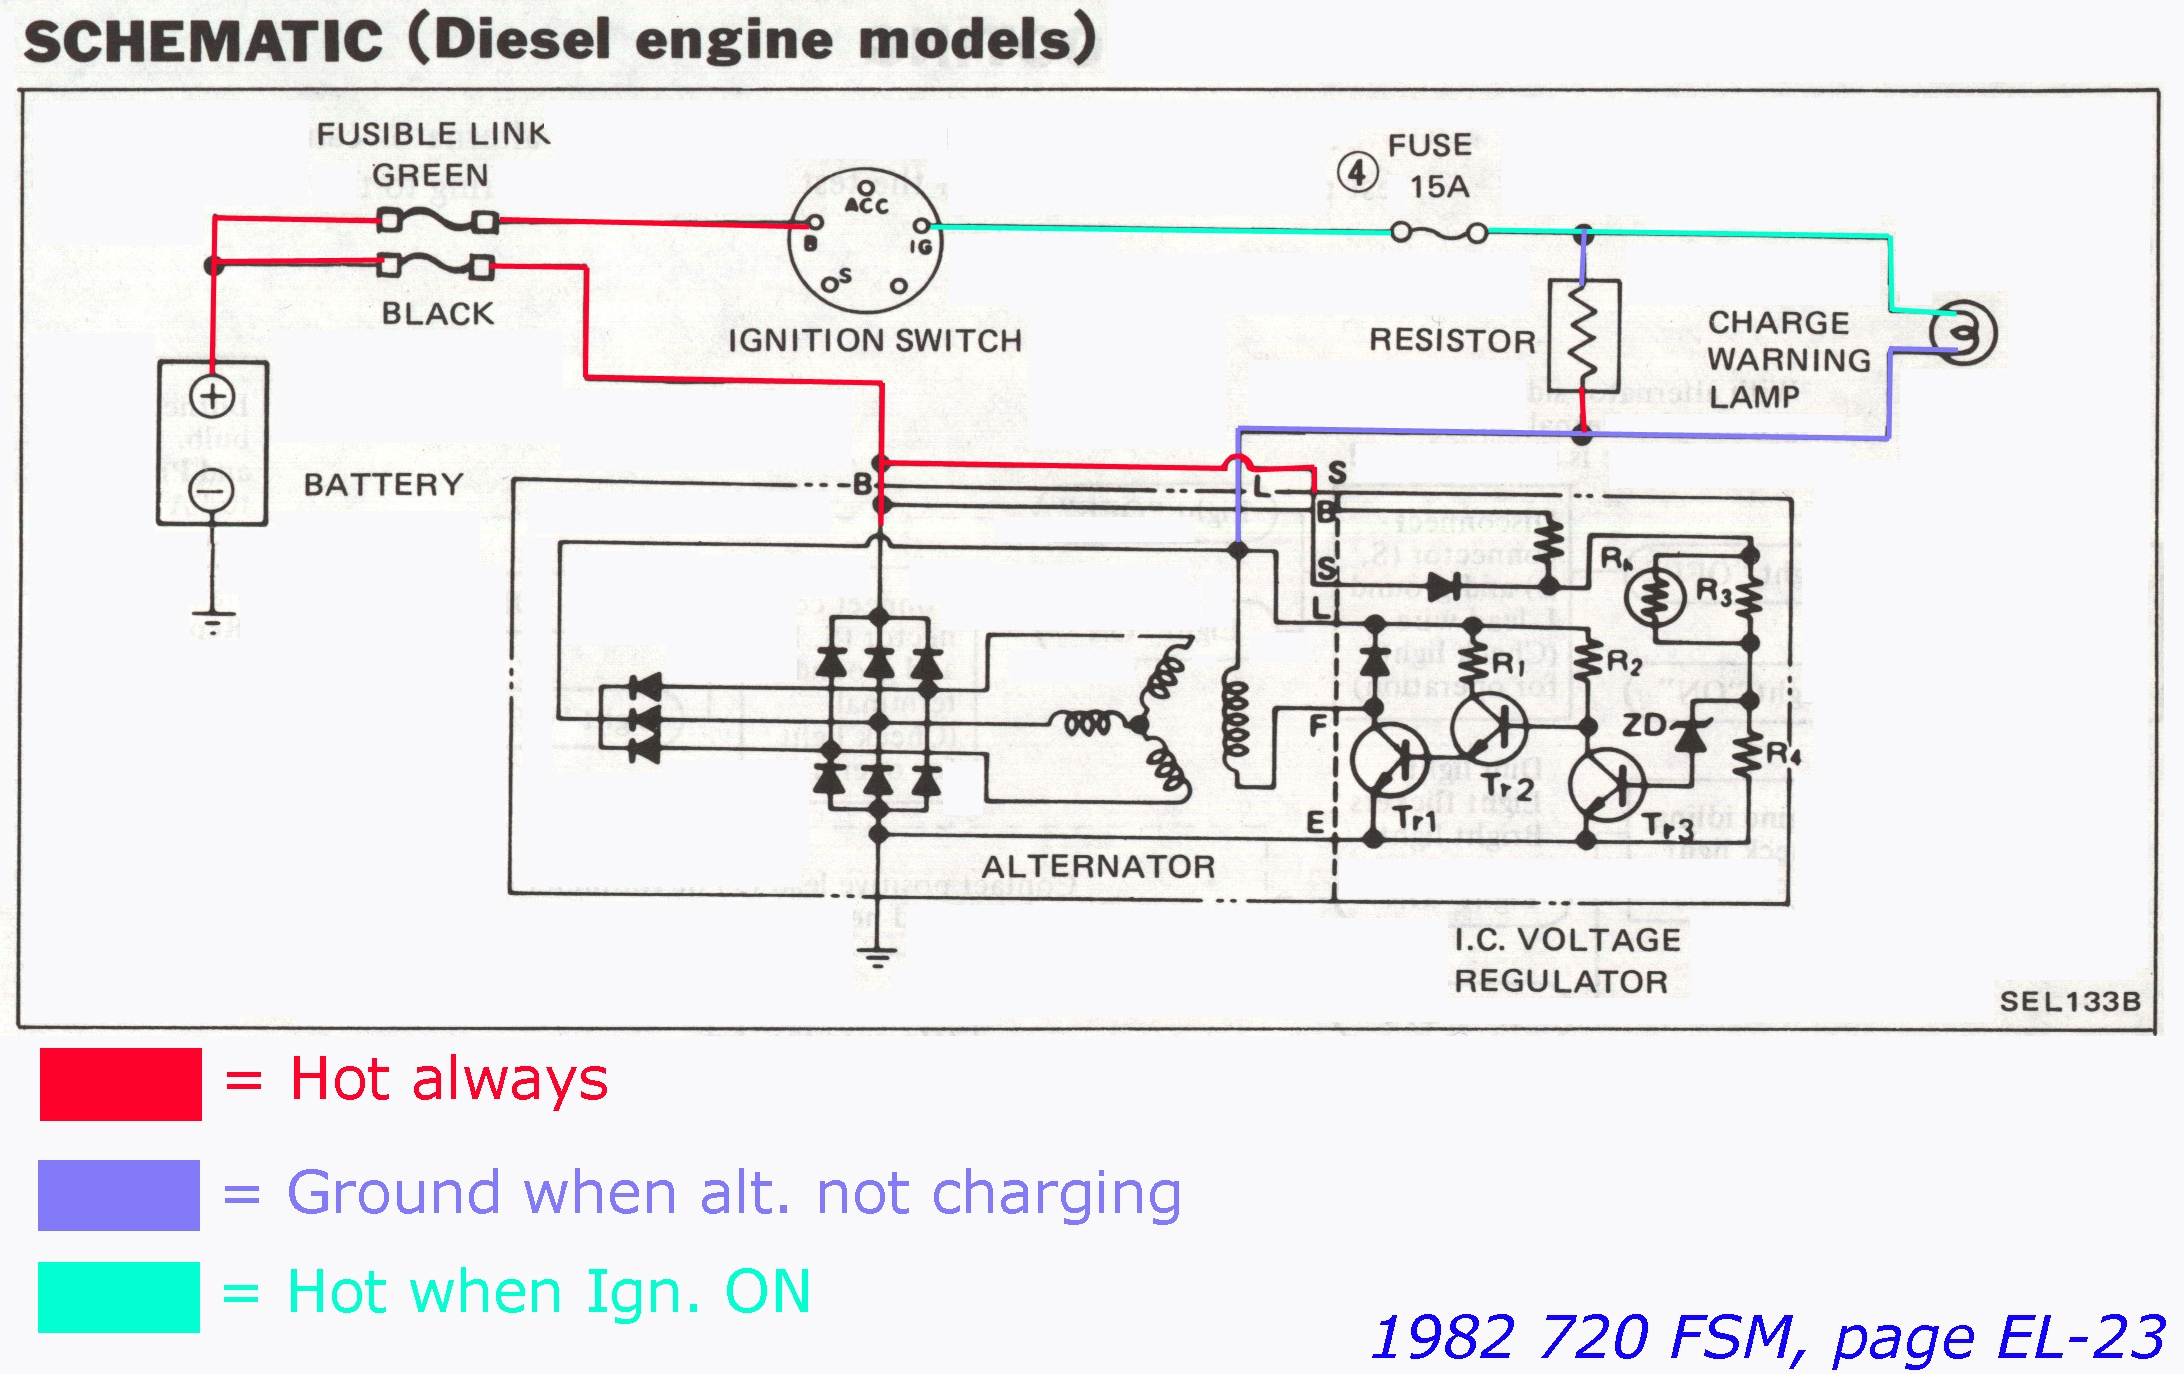 hitachi lr180 03c alternator wiring diagram 1996 club car 48 volt radio harness manual e books double din schematic best libraryhitachi schematics toyota